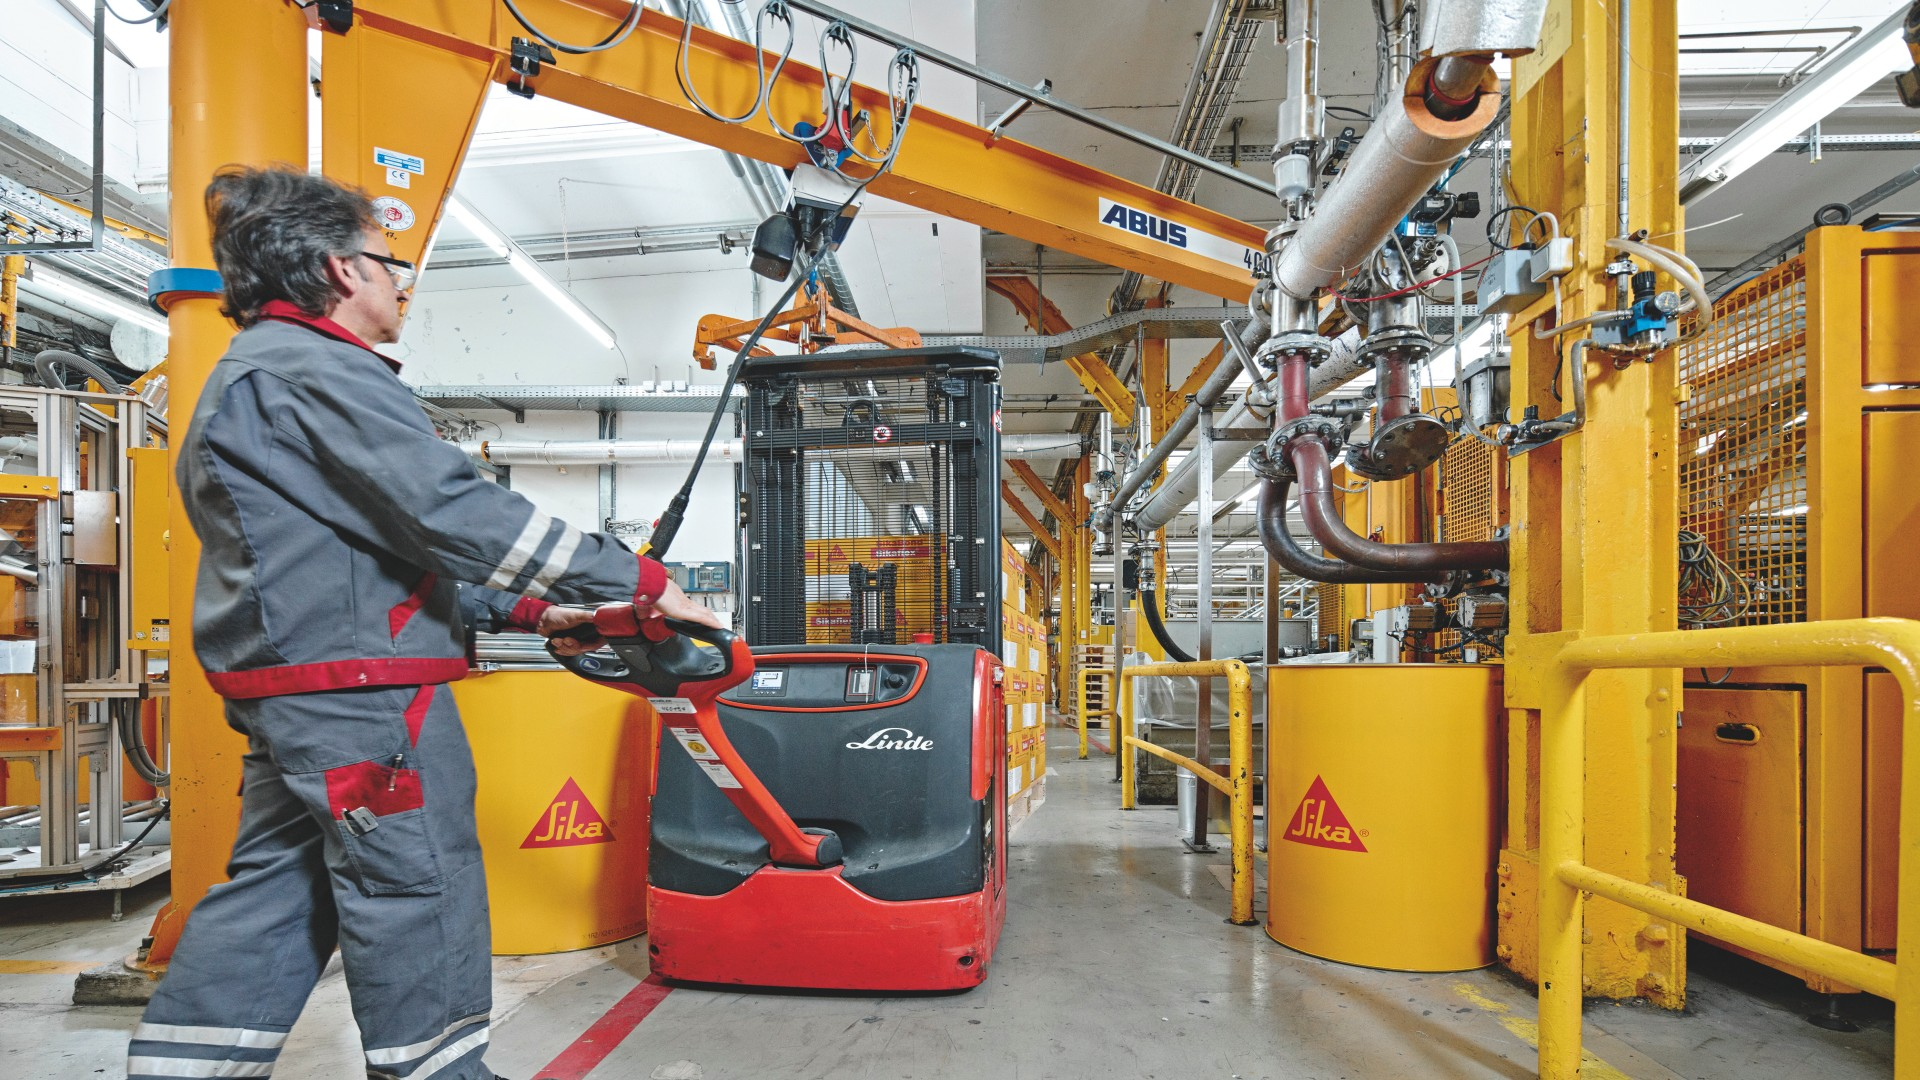 Linde pallet stacker at Sika